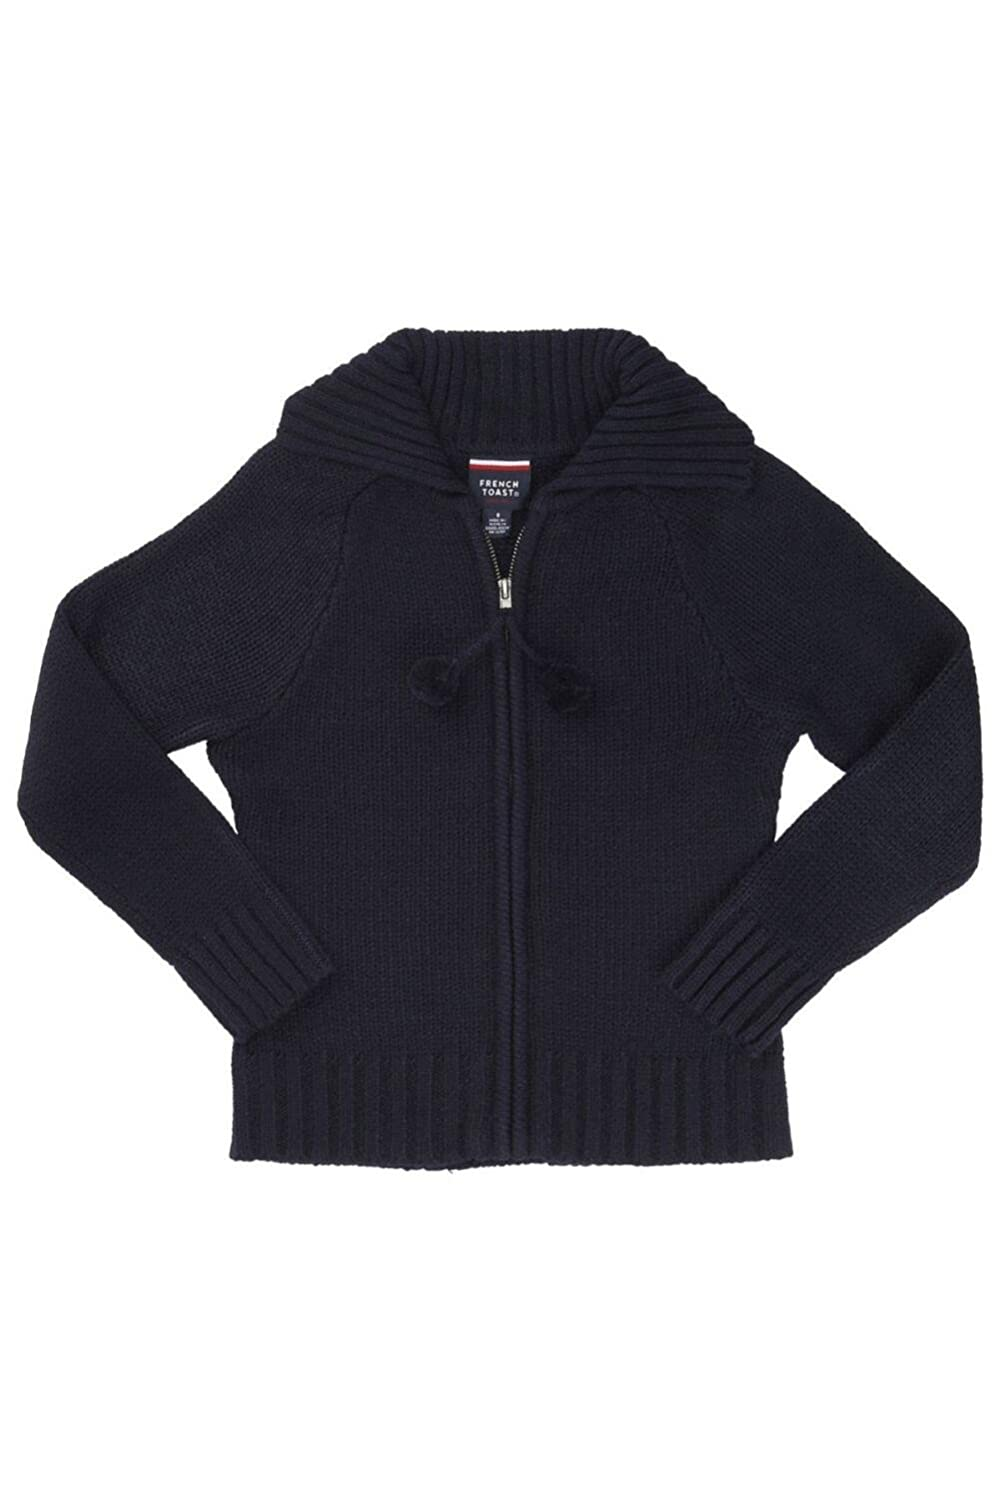 French Toast Pom-Pom Zip-Up Sweater Girls Navy 1358B NAVY 4